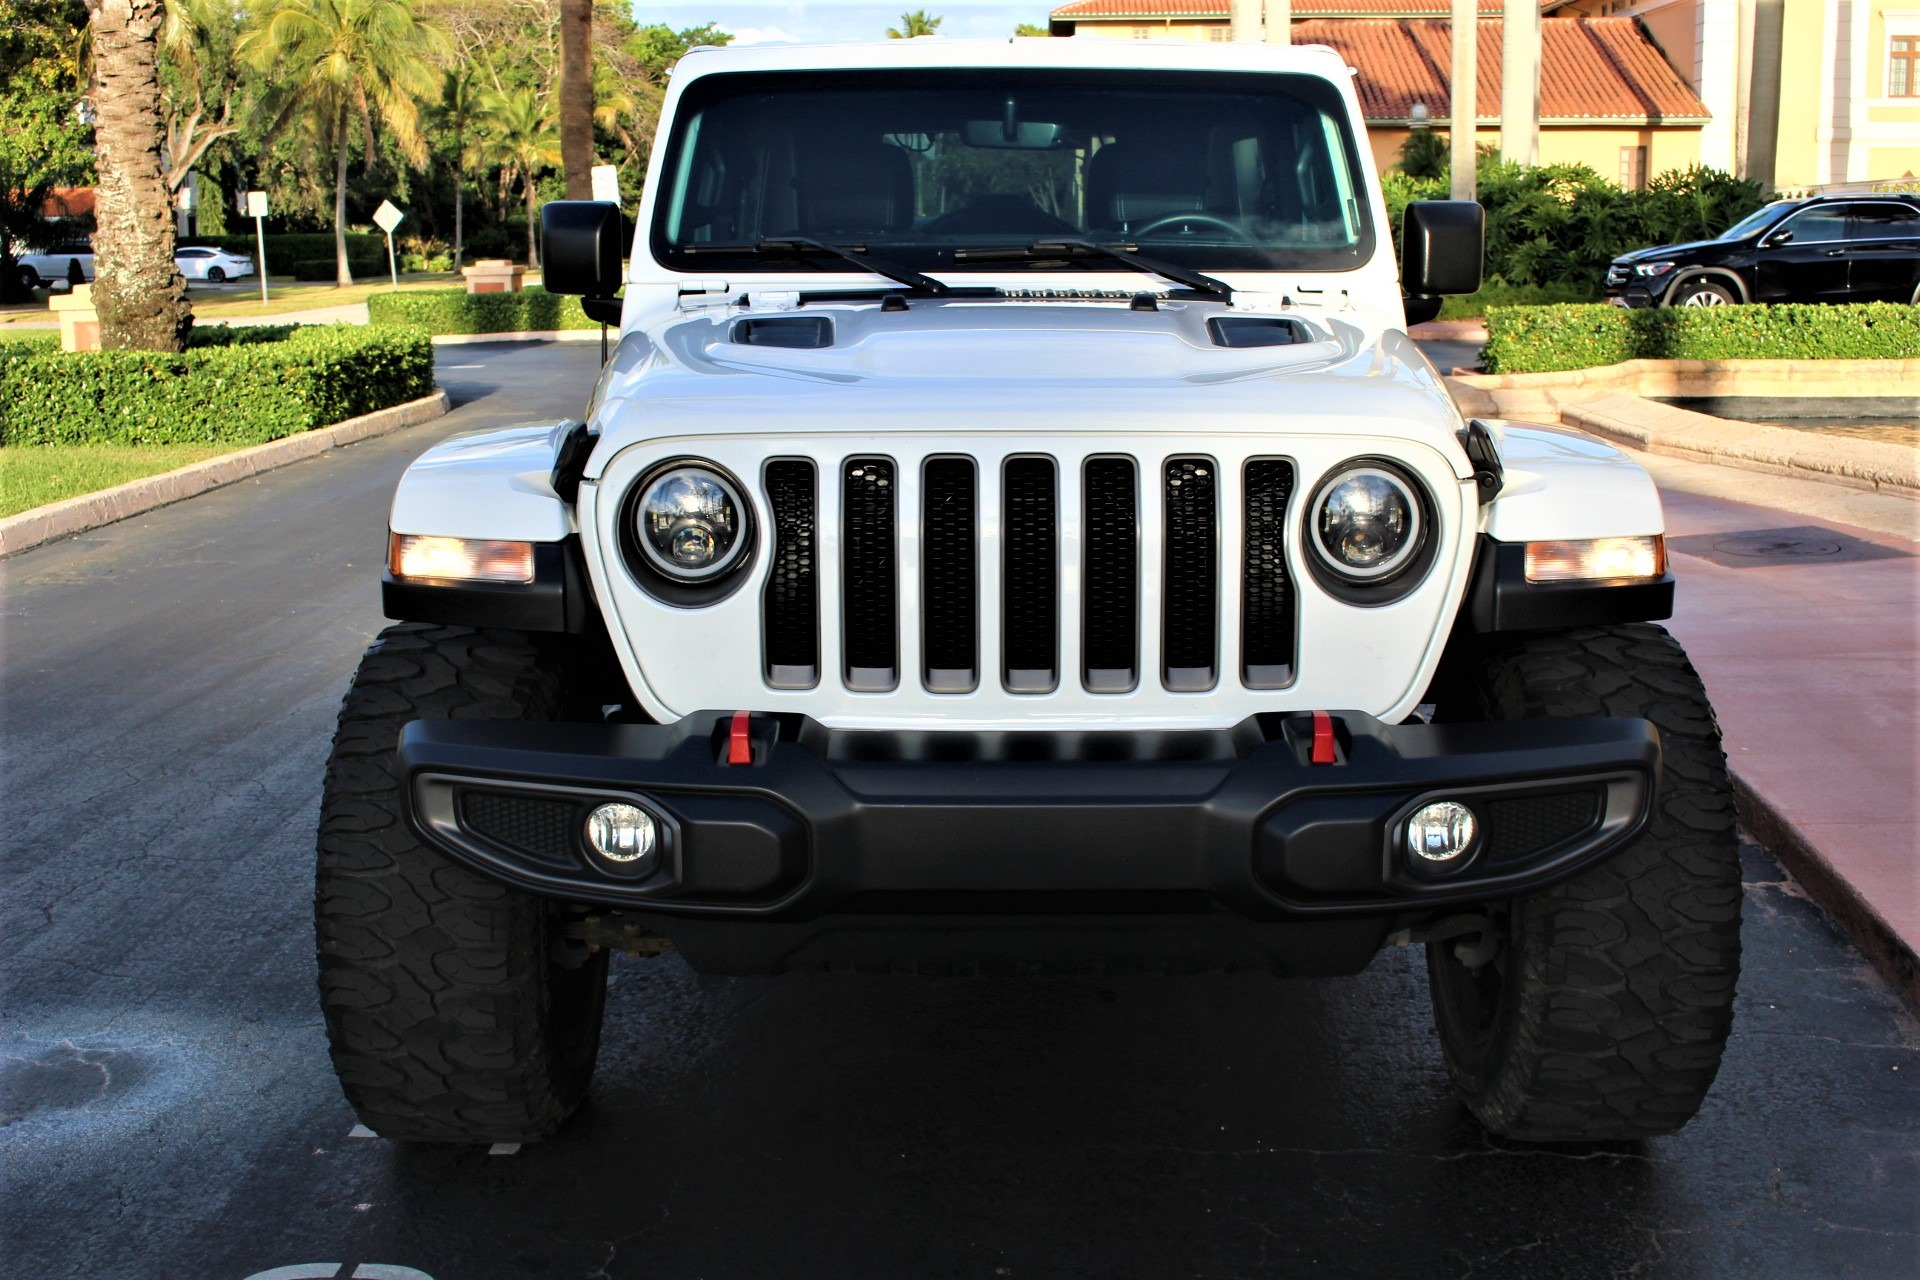 Used 2018 Jeep Wrangler Unlimited Rubicon for sale $48,850 at The Gables Sports Cars in Miami FL 33146 3